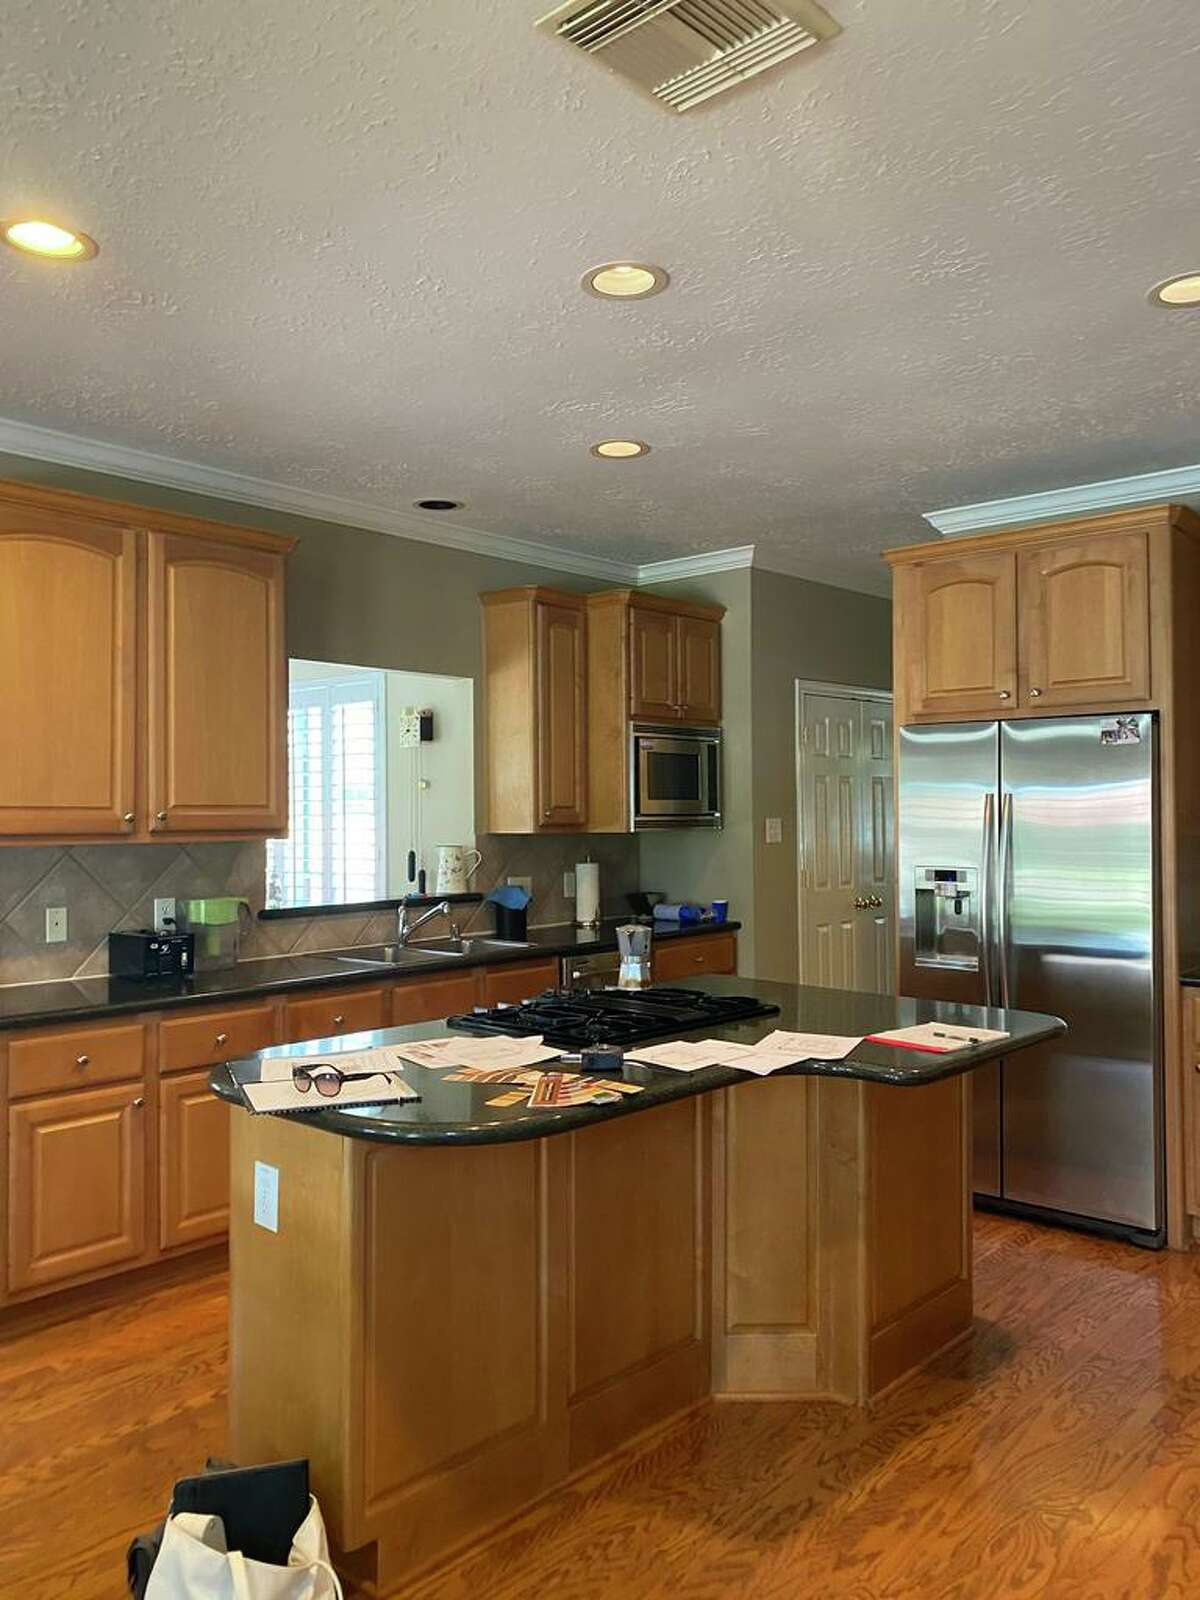 Before, the kitchen had wood-stained cabinets, a dark counter and an irregular-shaped island, common in homes built 20 years ago.